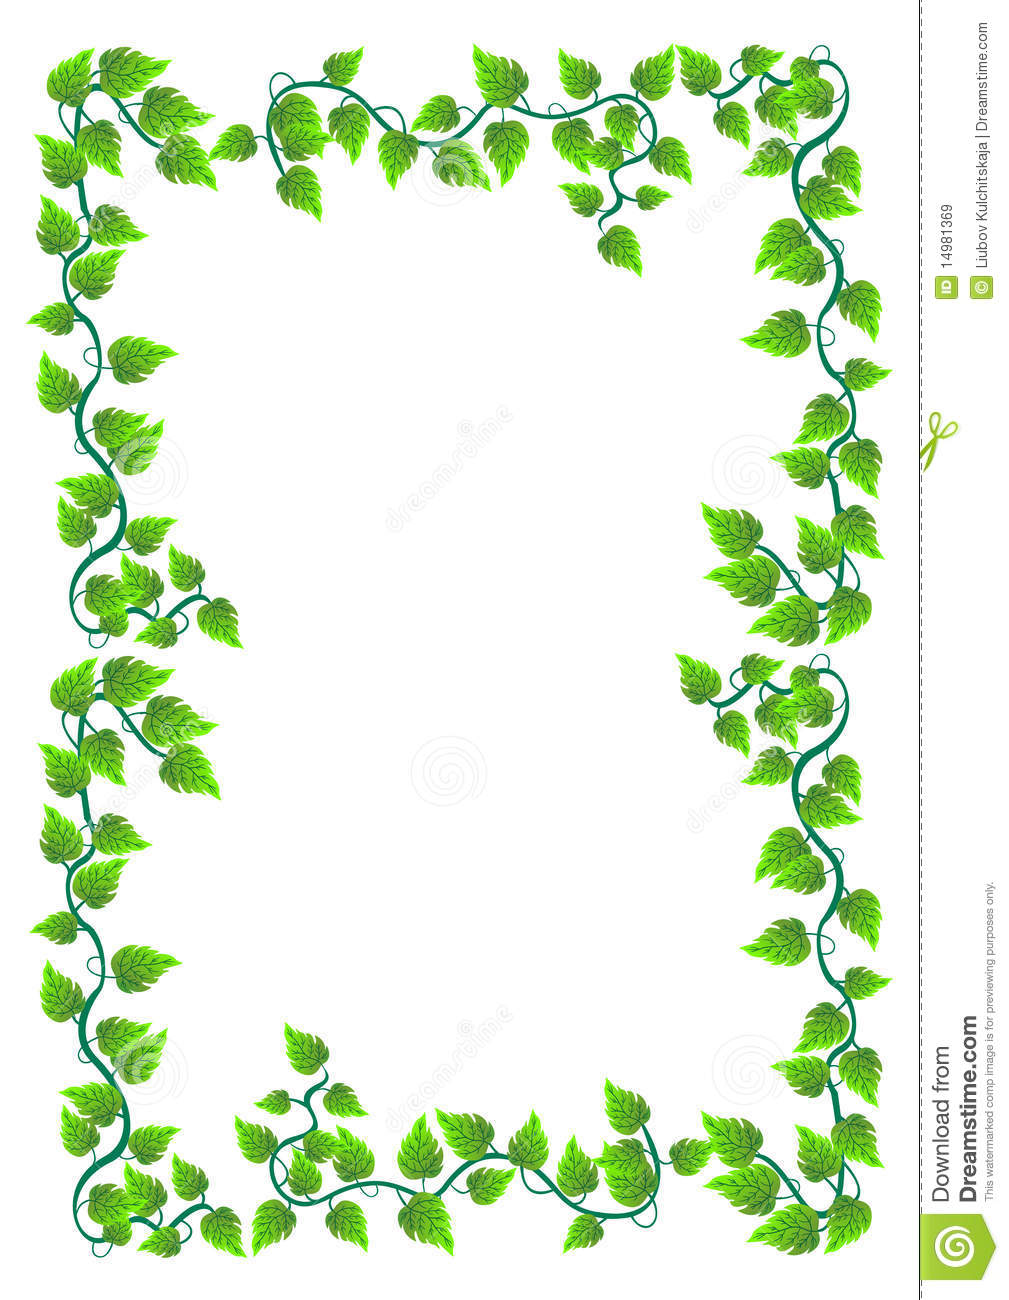 ... Frame With Leafs. Vector. Royalty Free Stock Images - Image: 14981369